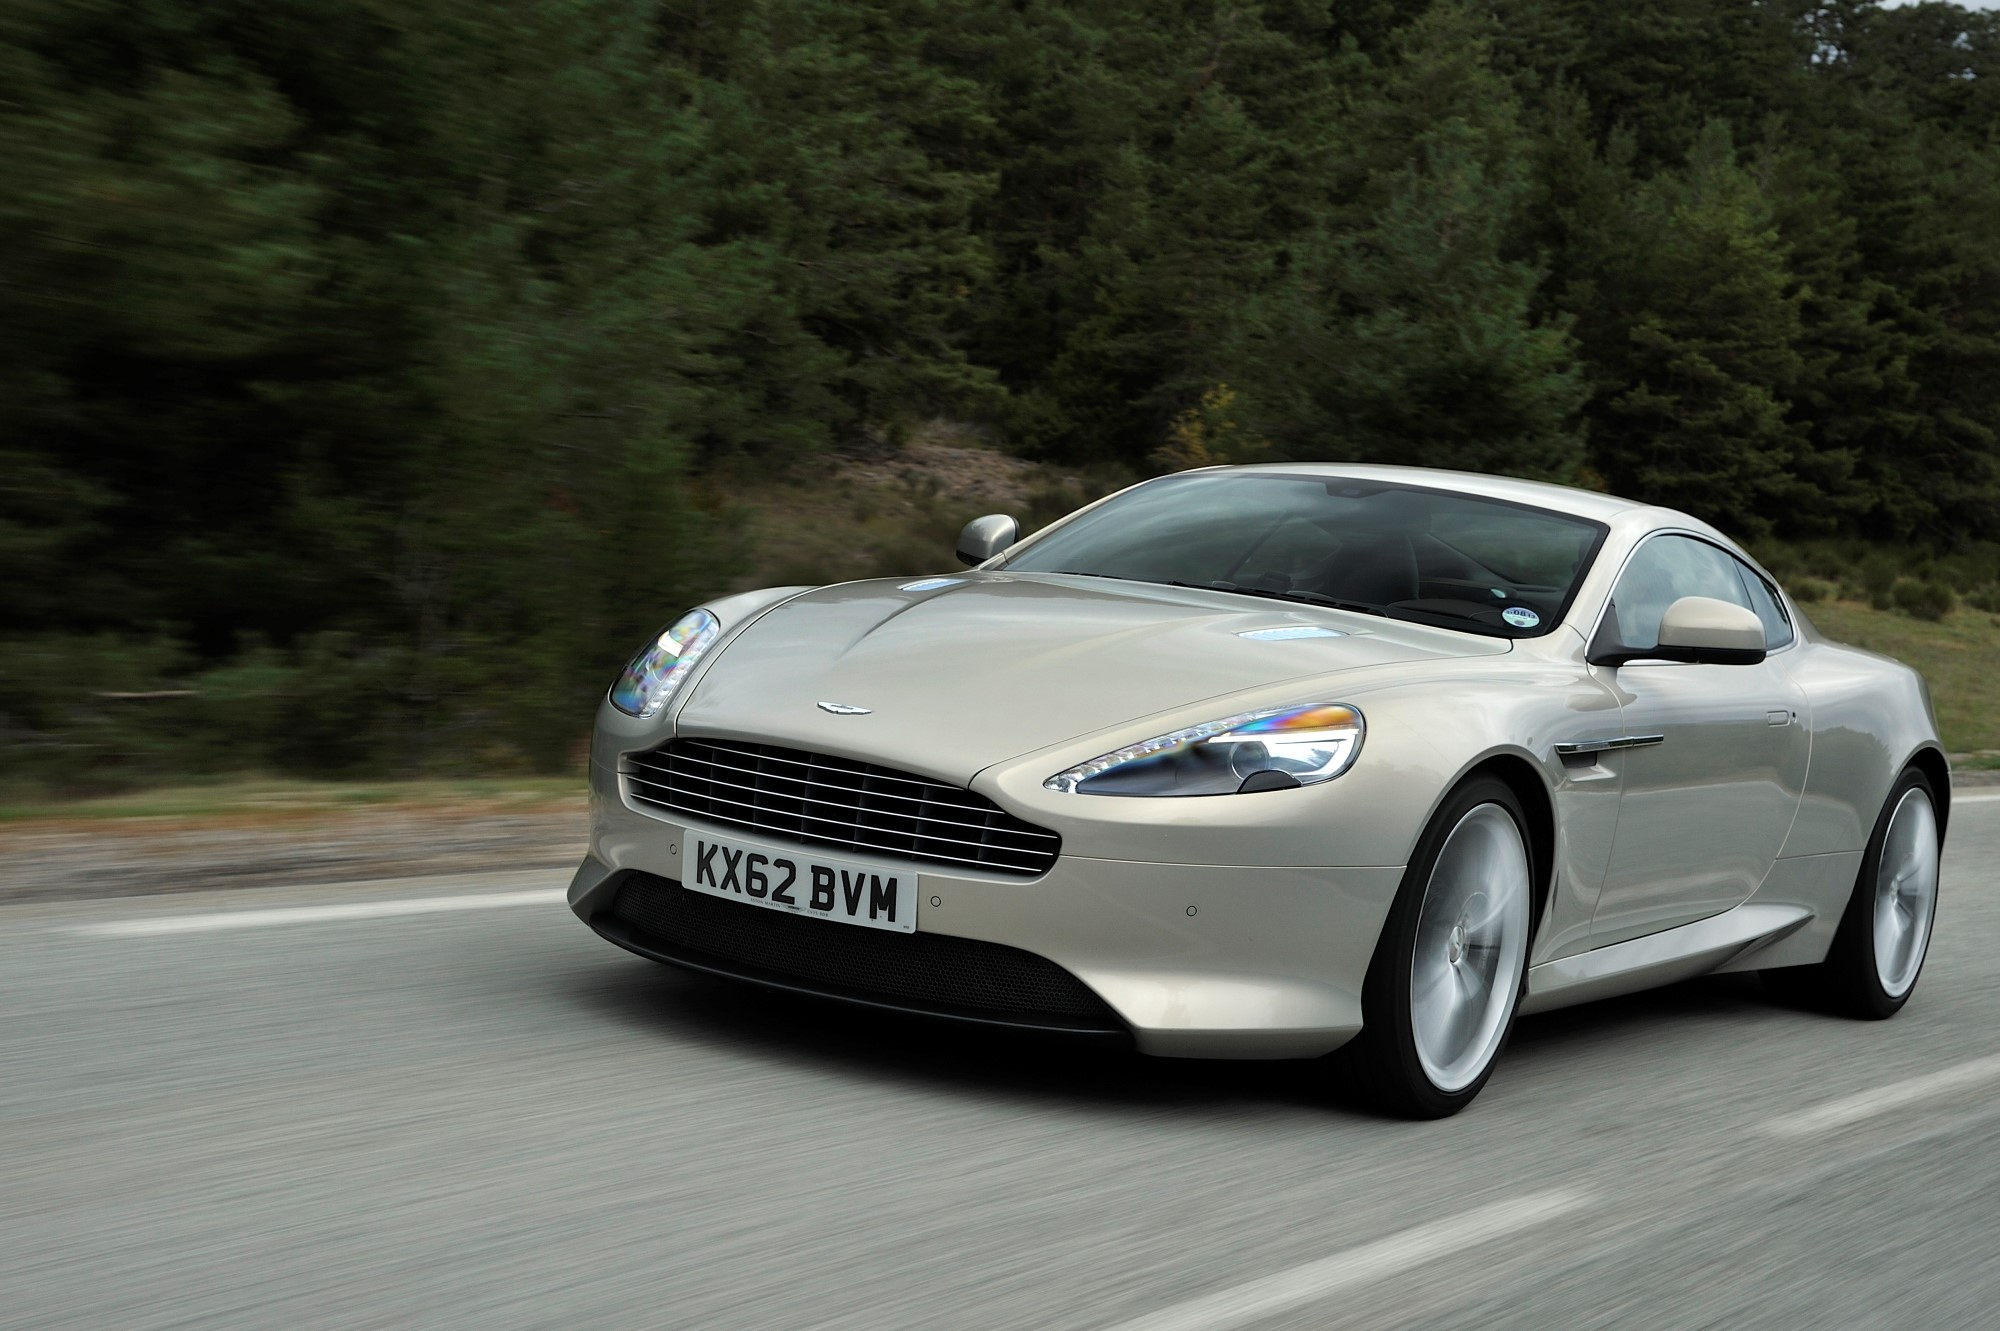 2014 Aston Martin DB9 Review, Ratings, Specs, Prices, and ...